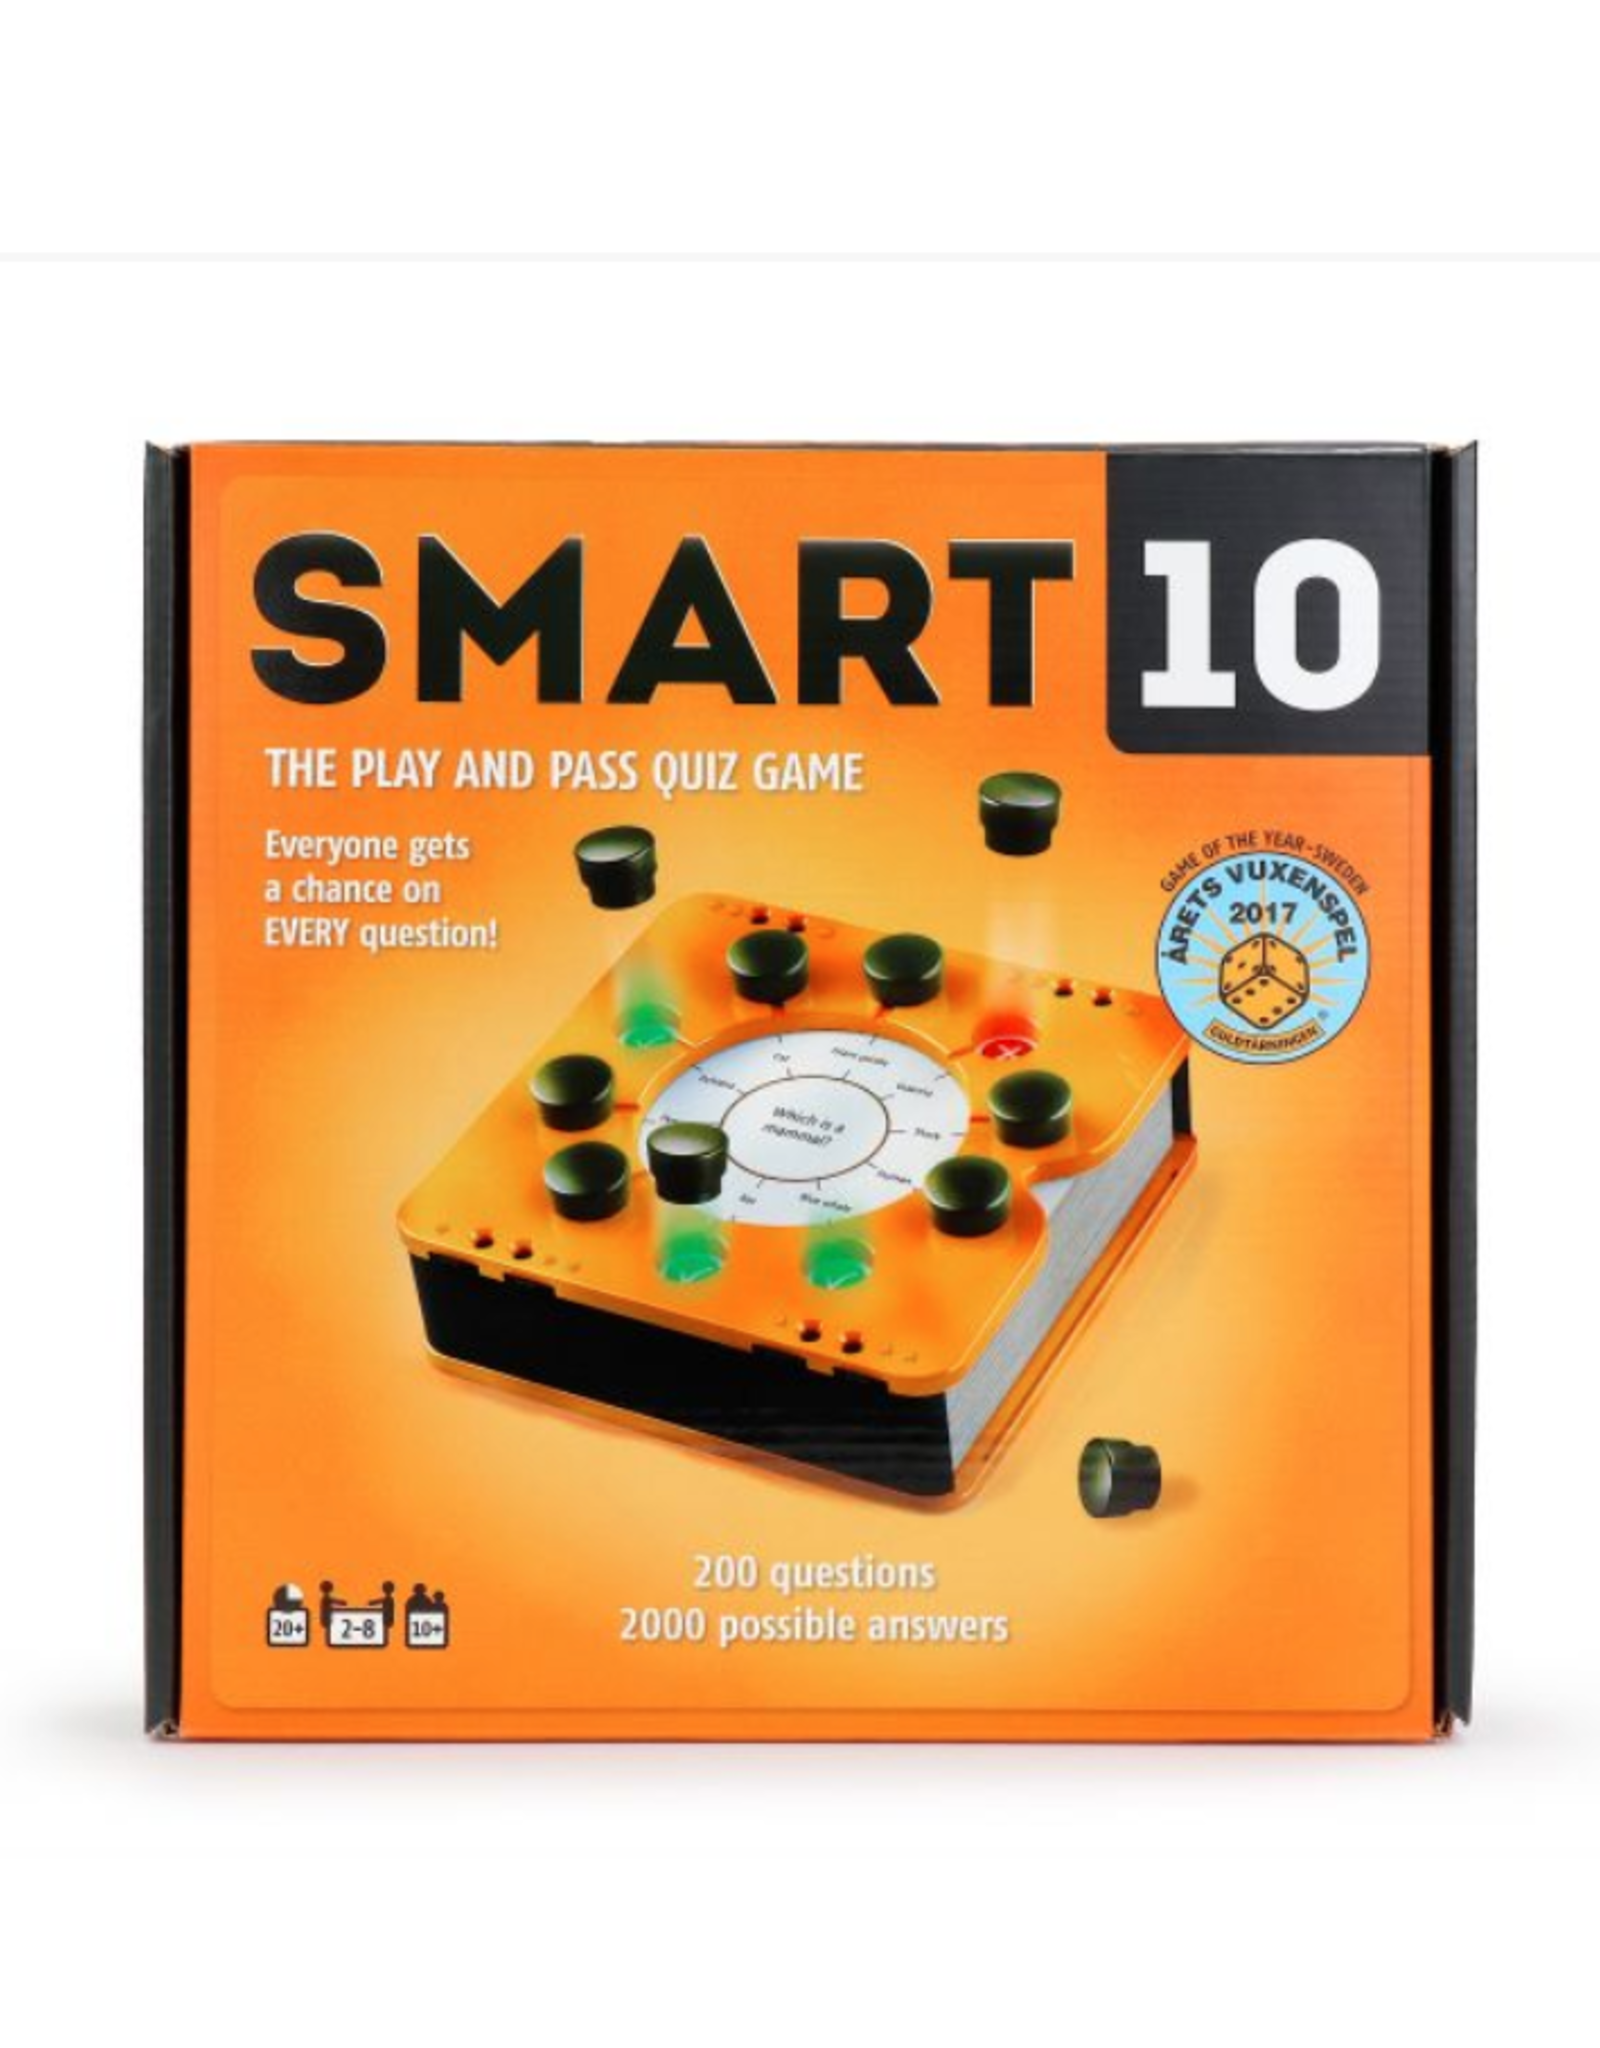 Bananagrams Smart 10 game